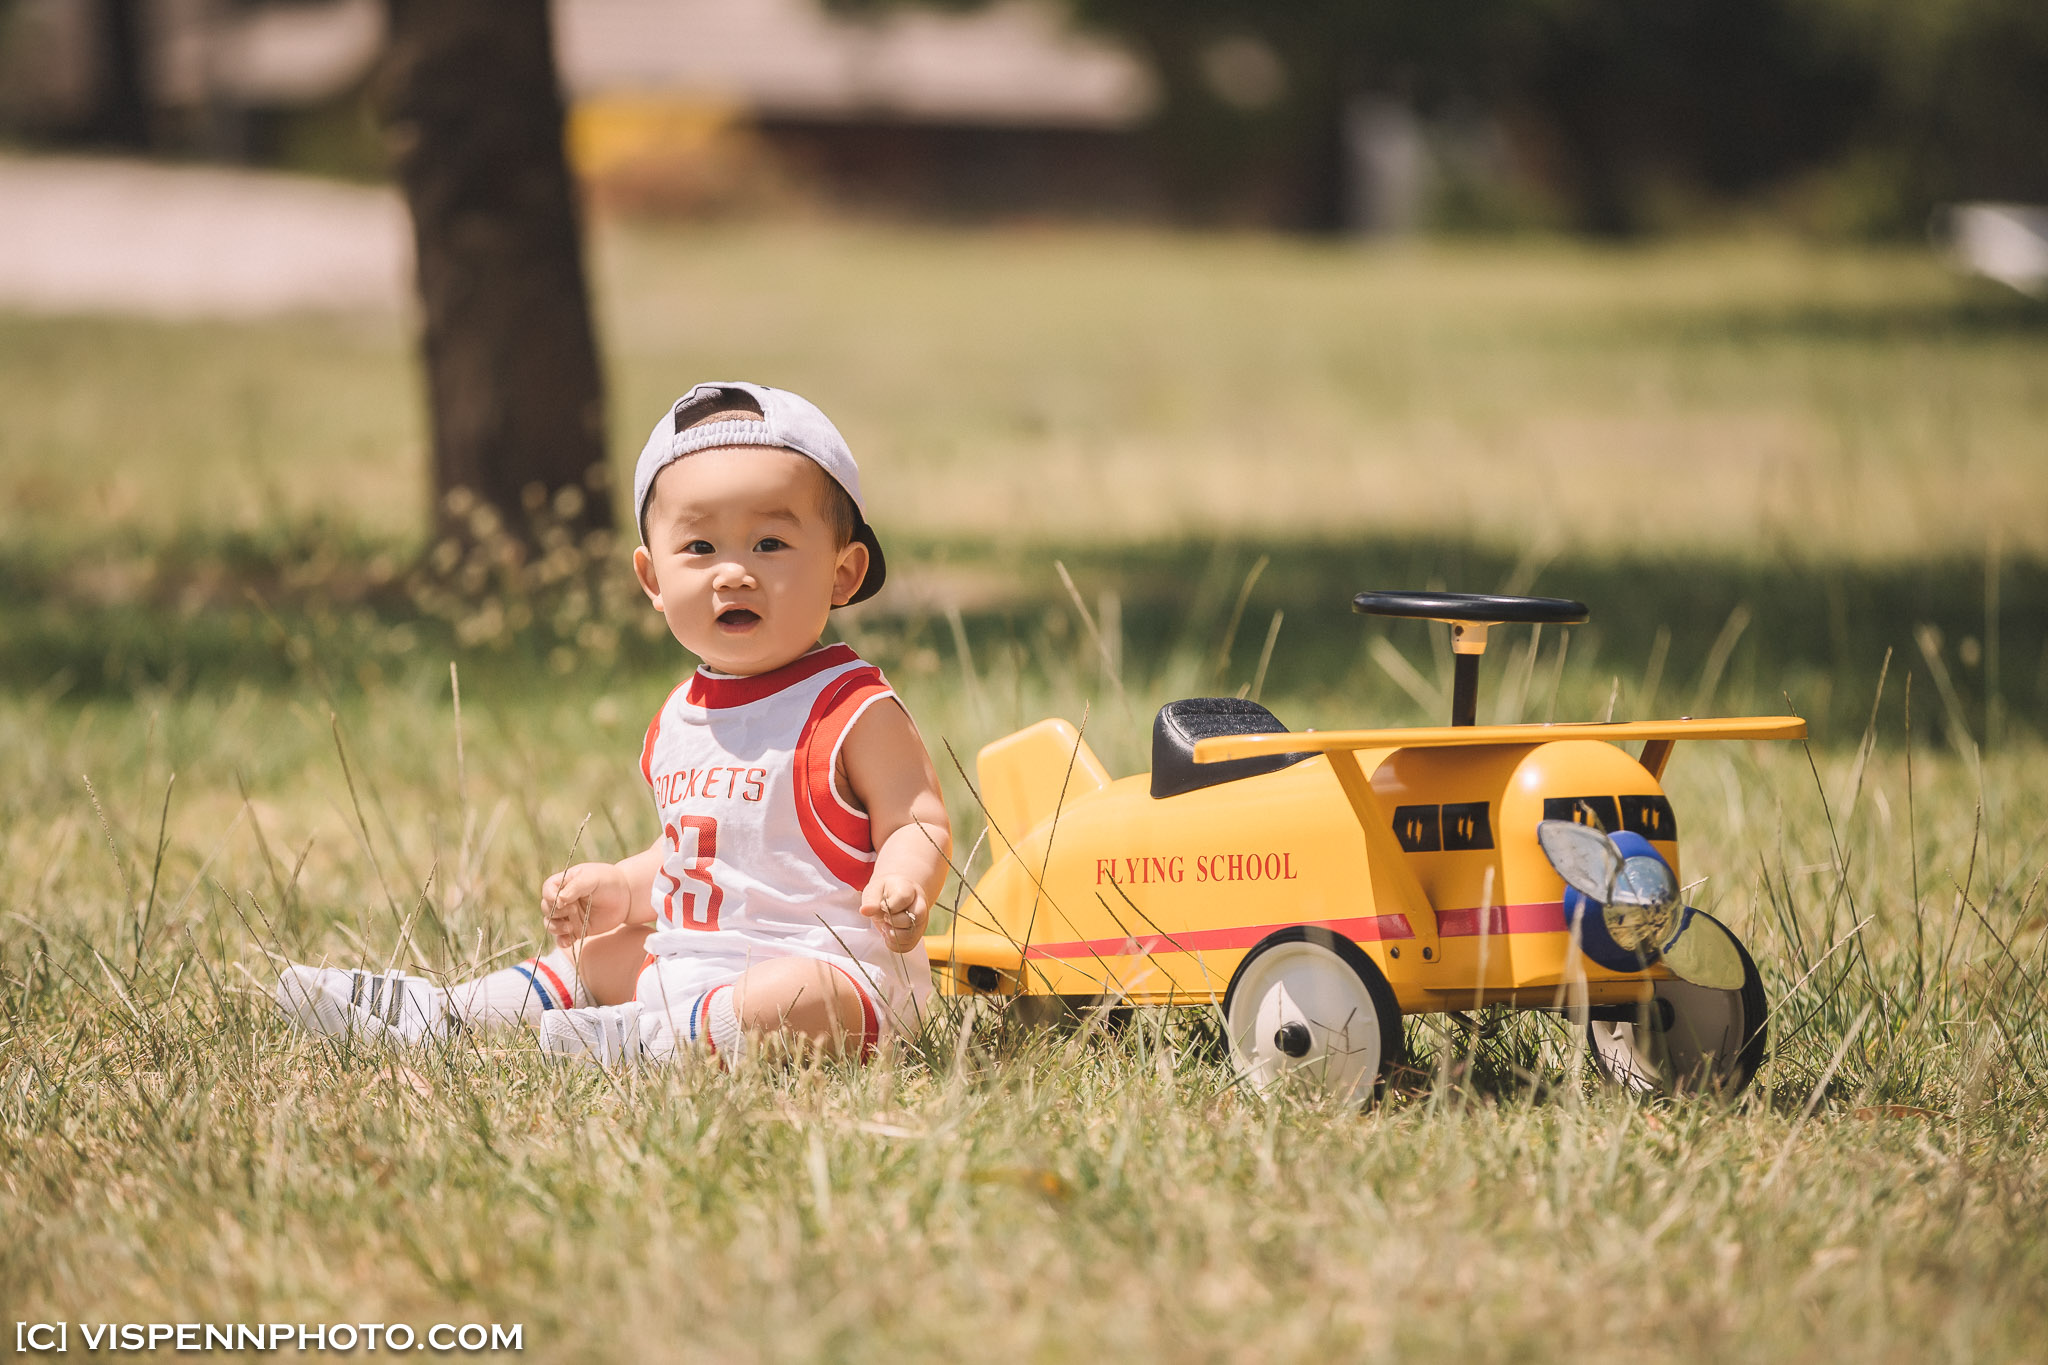 Melbourne Newborn Baby Family Photo BaoBao VISPENN 墨尔本 儿童 宝宝 百天照 满月照 孕妇照 全家福 KIDS VISPENN QingYu 1458